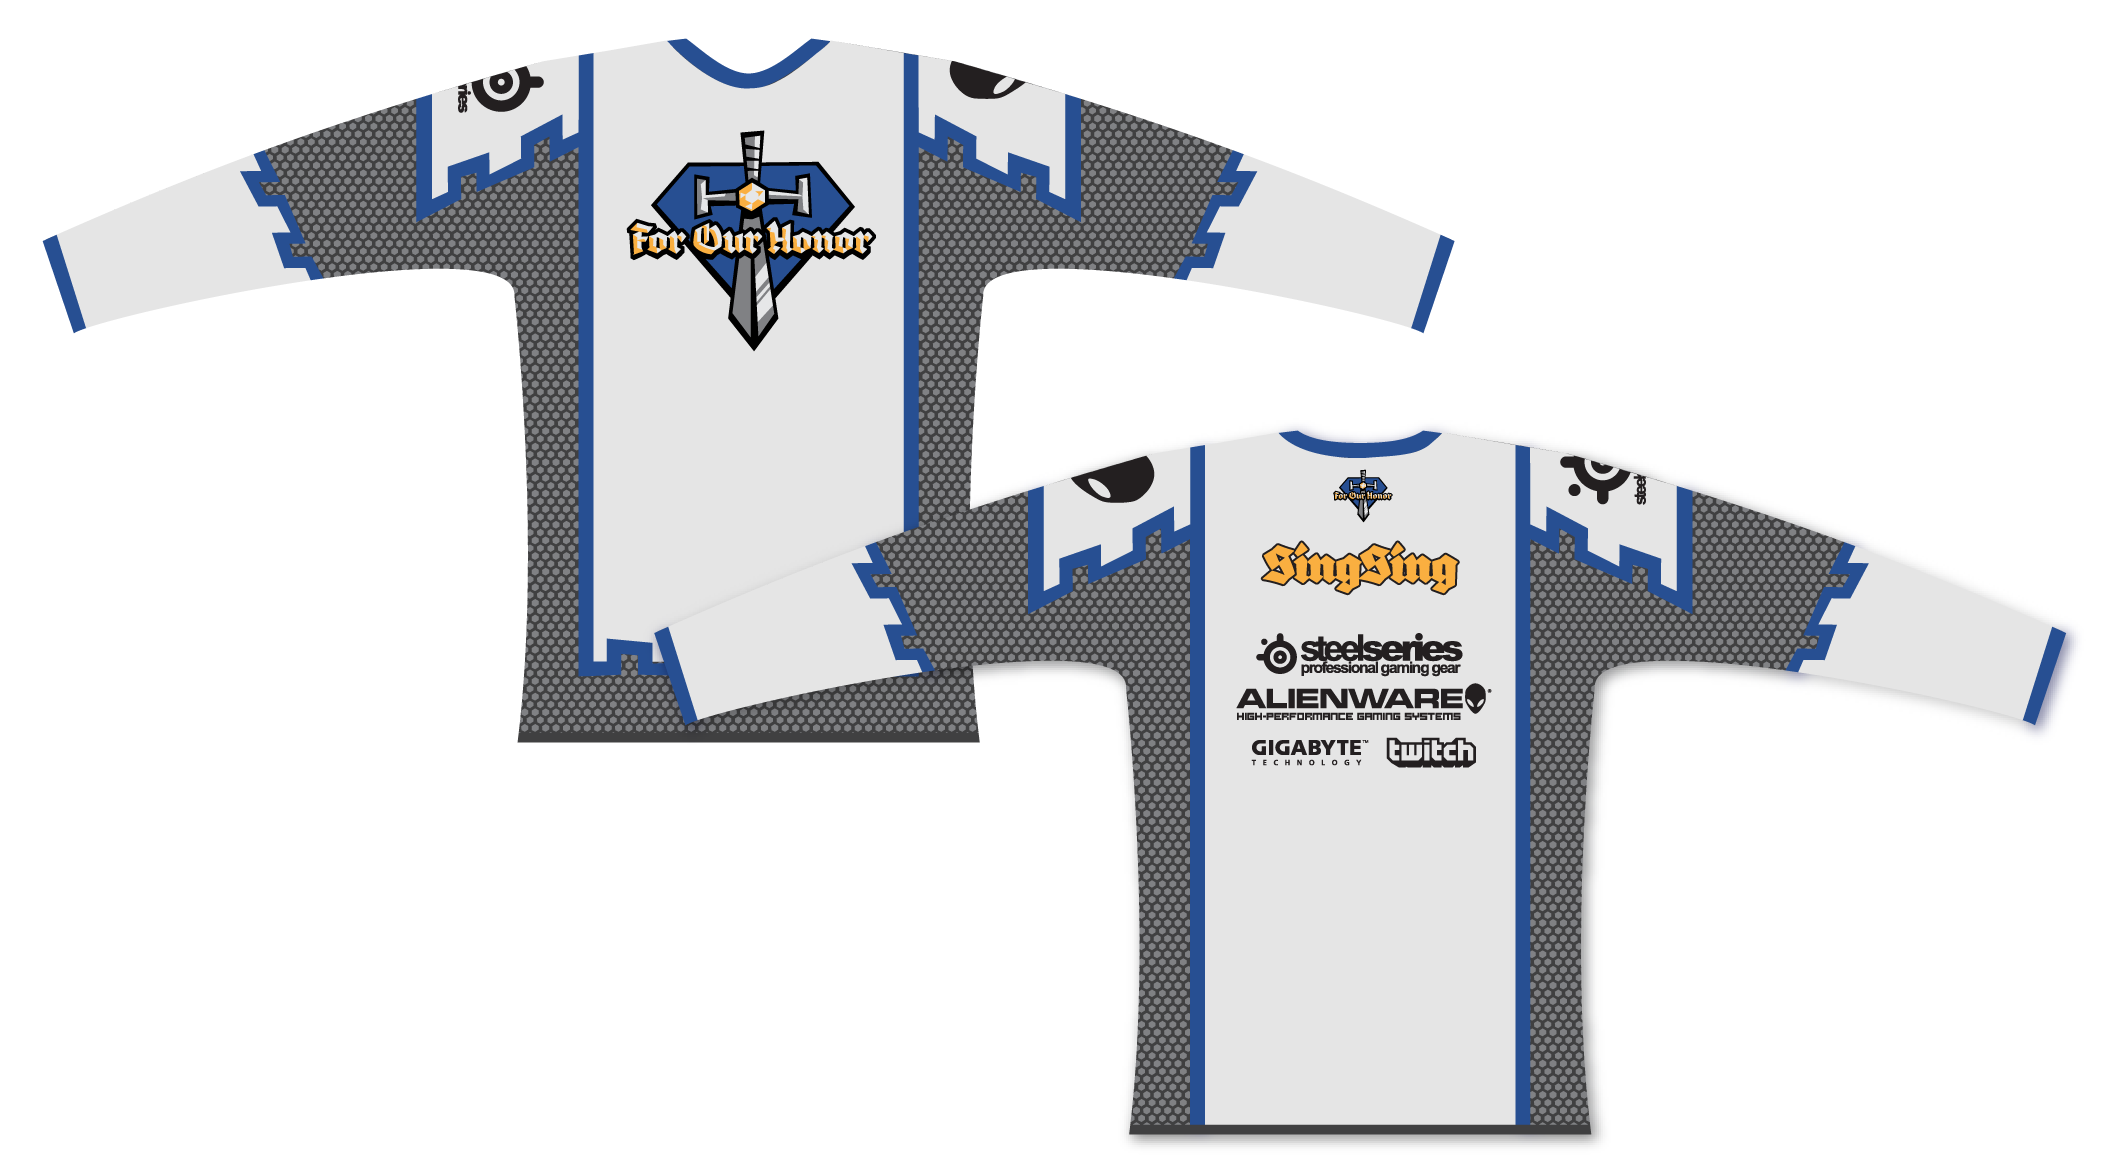 For Our Honor jerseys